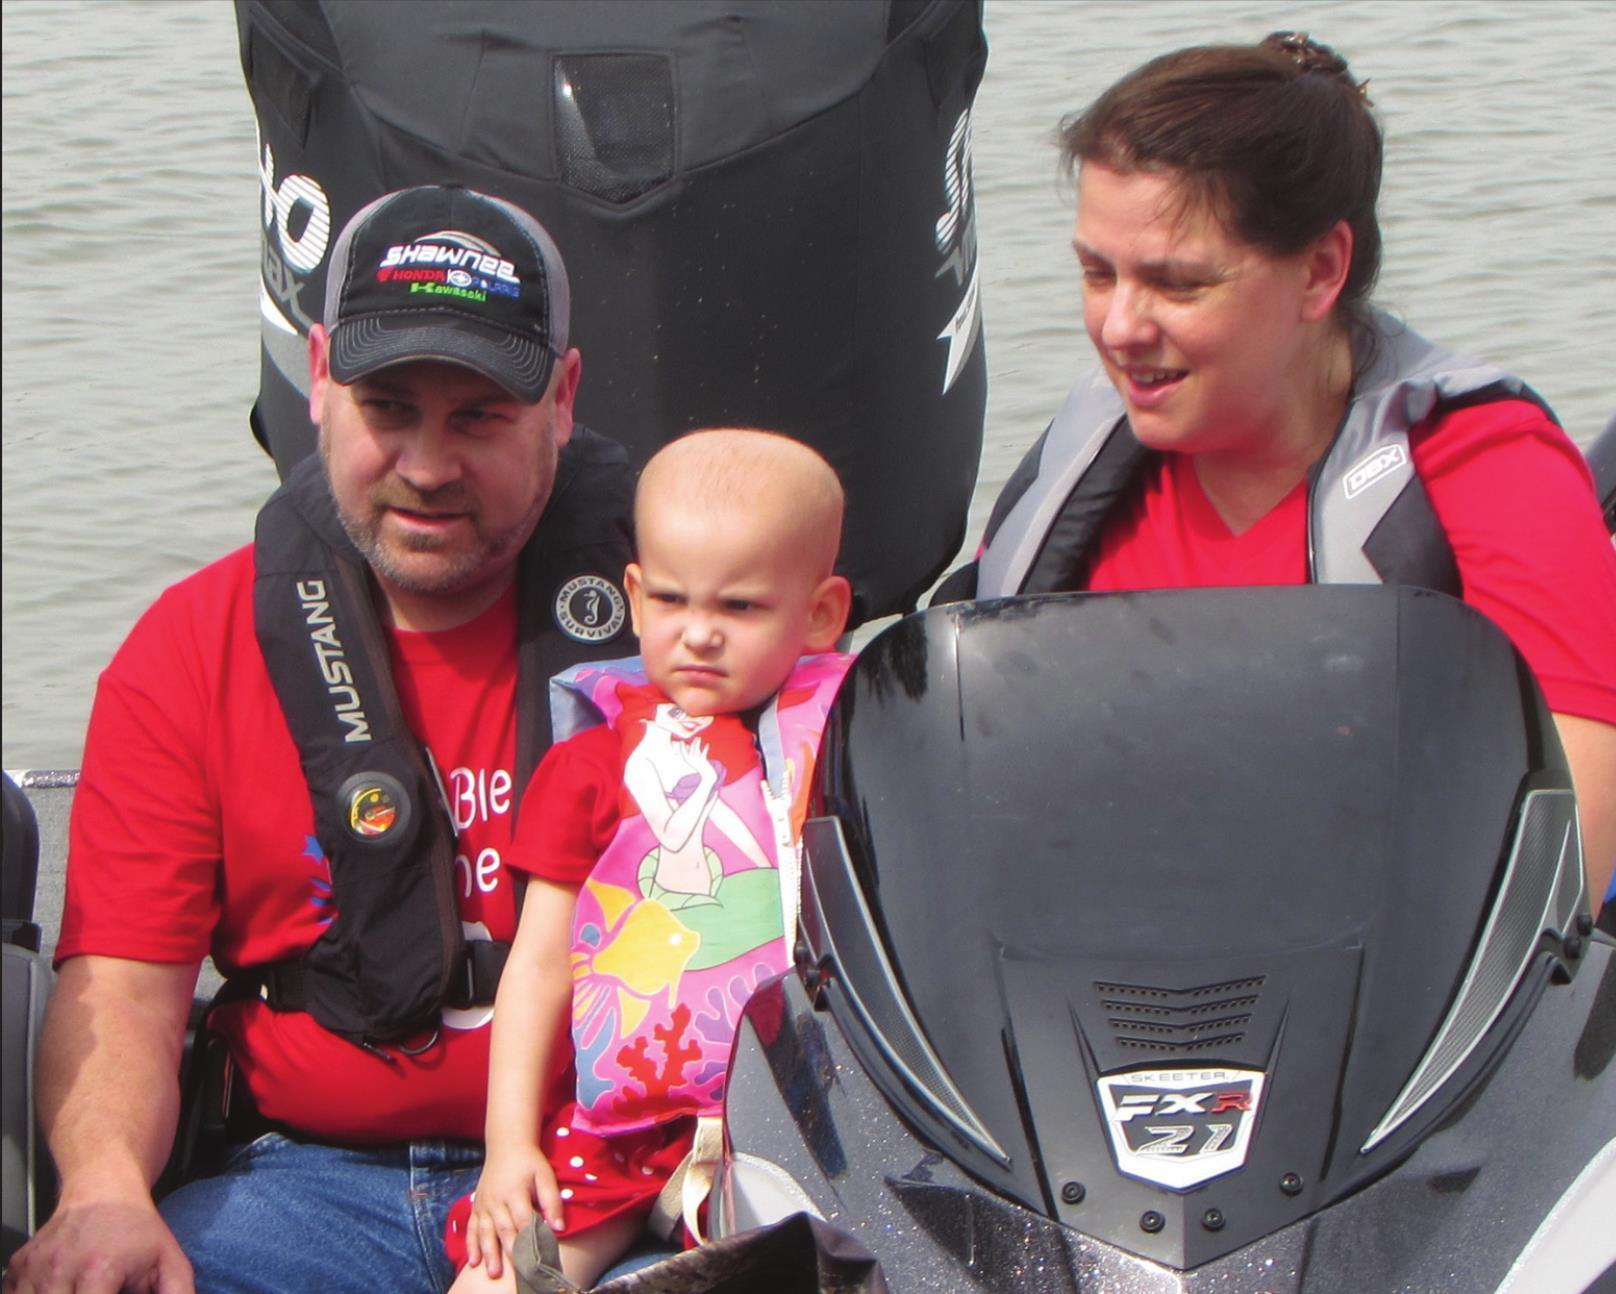 Millie with her parents, David and Courtney Mount. SHAUNA BELYEU   INDIAN JOURNAL